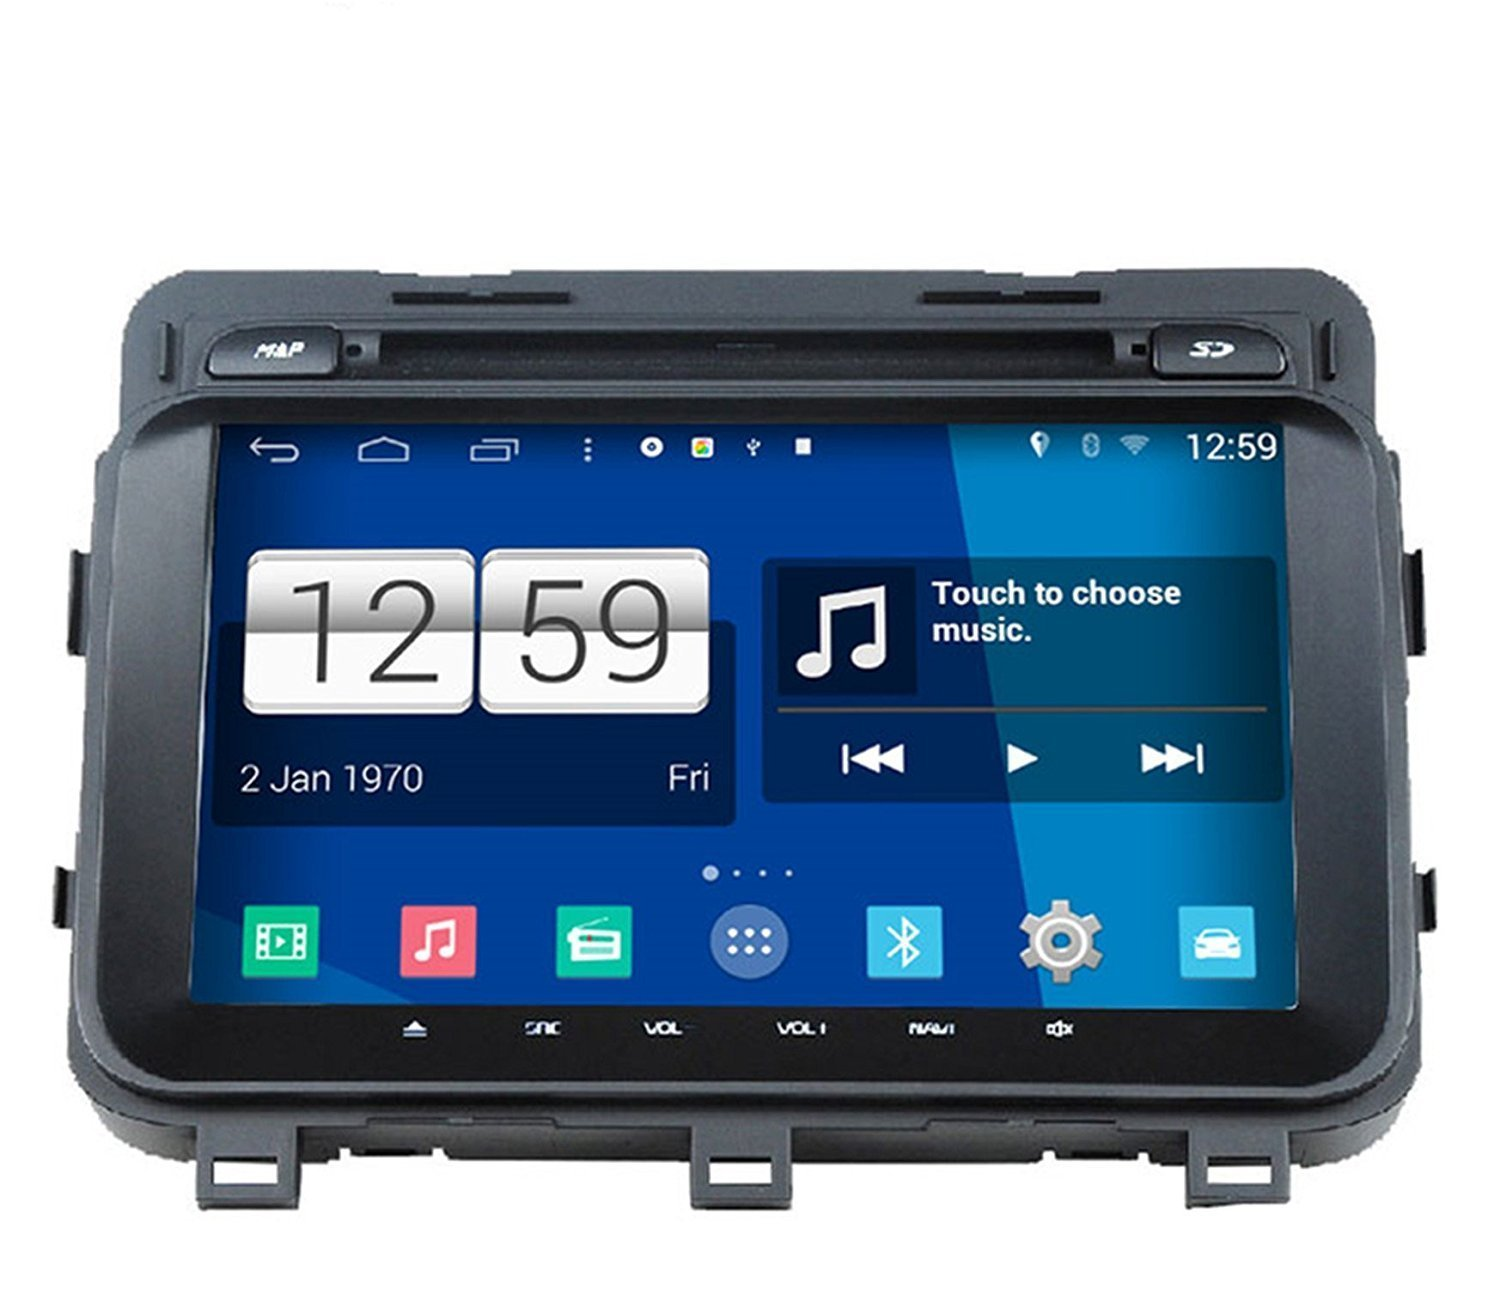 Roverone Android 444 Car Dvd Player For Kia Optima K5 2004 Thermostat Location 2014 2015 With Gps Navigation Radio Bluetooth Sd Usb Mirror Link Touch Screen